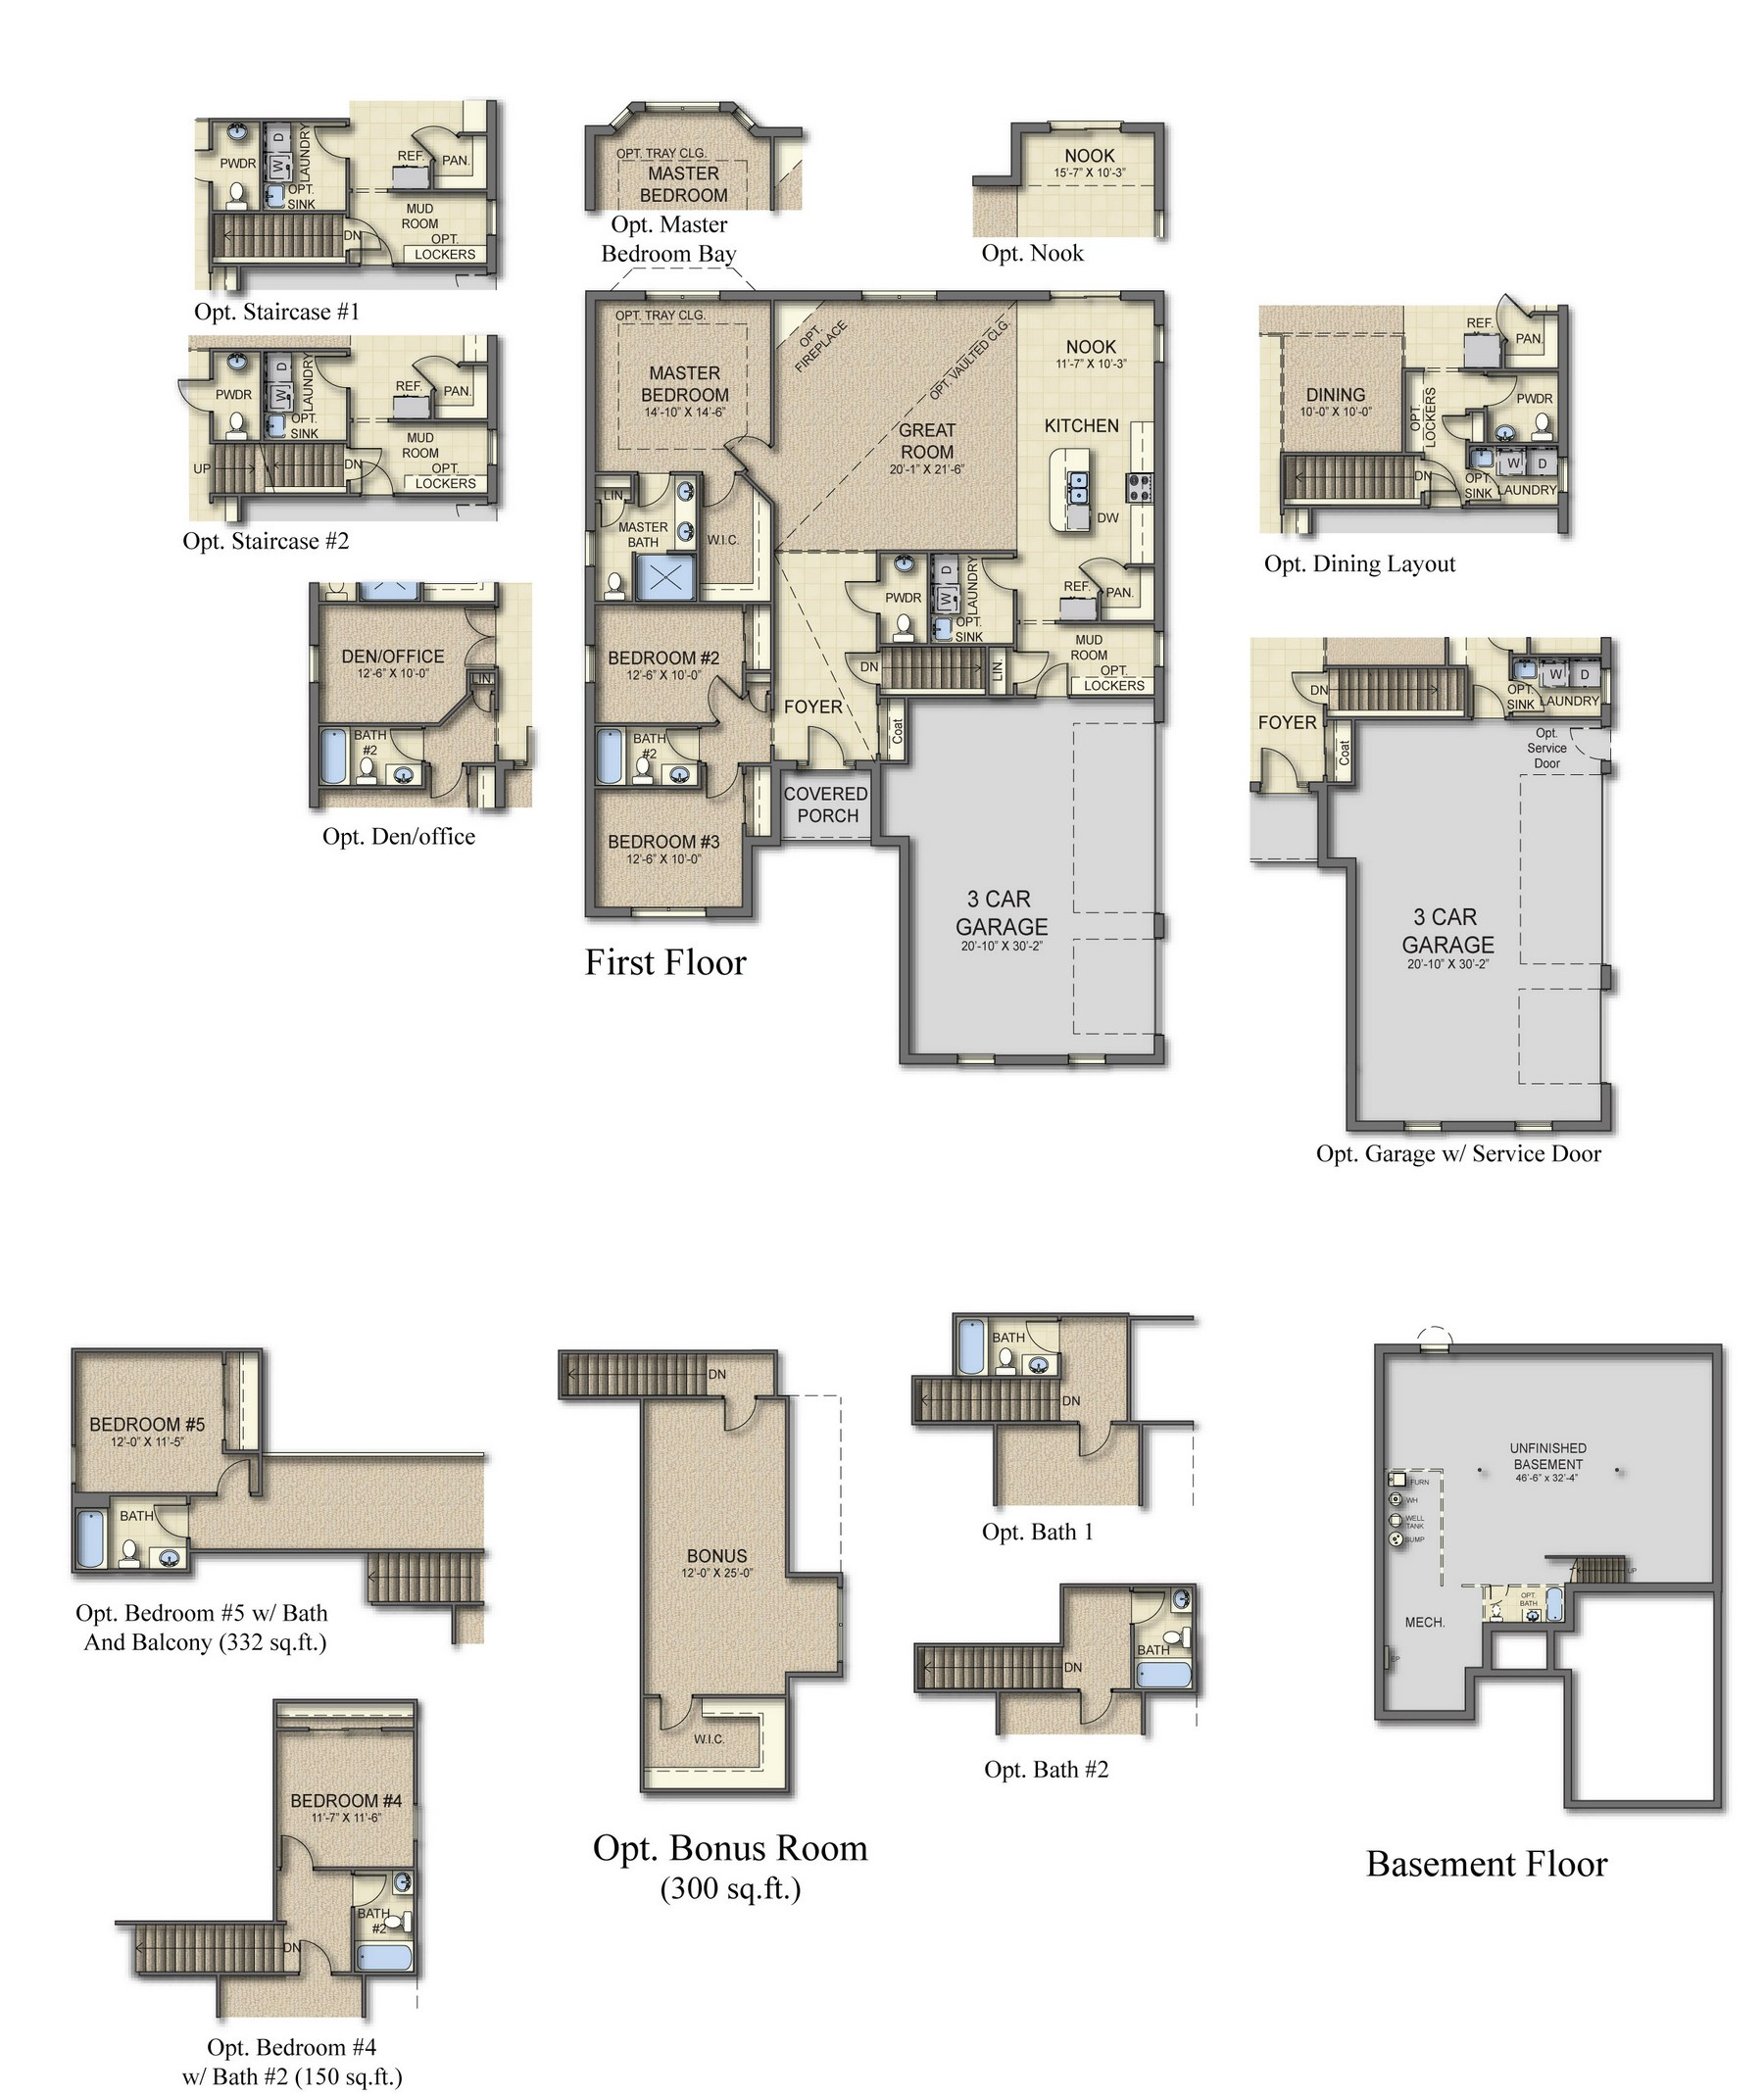 3 car garage floor plans for Car floor plan